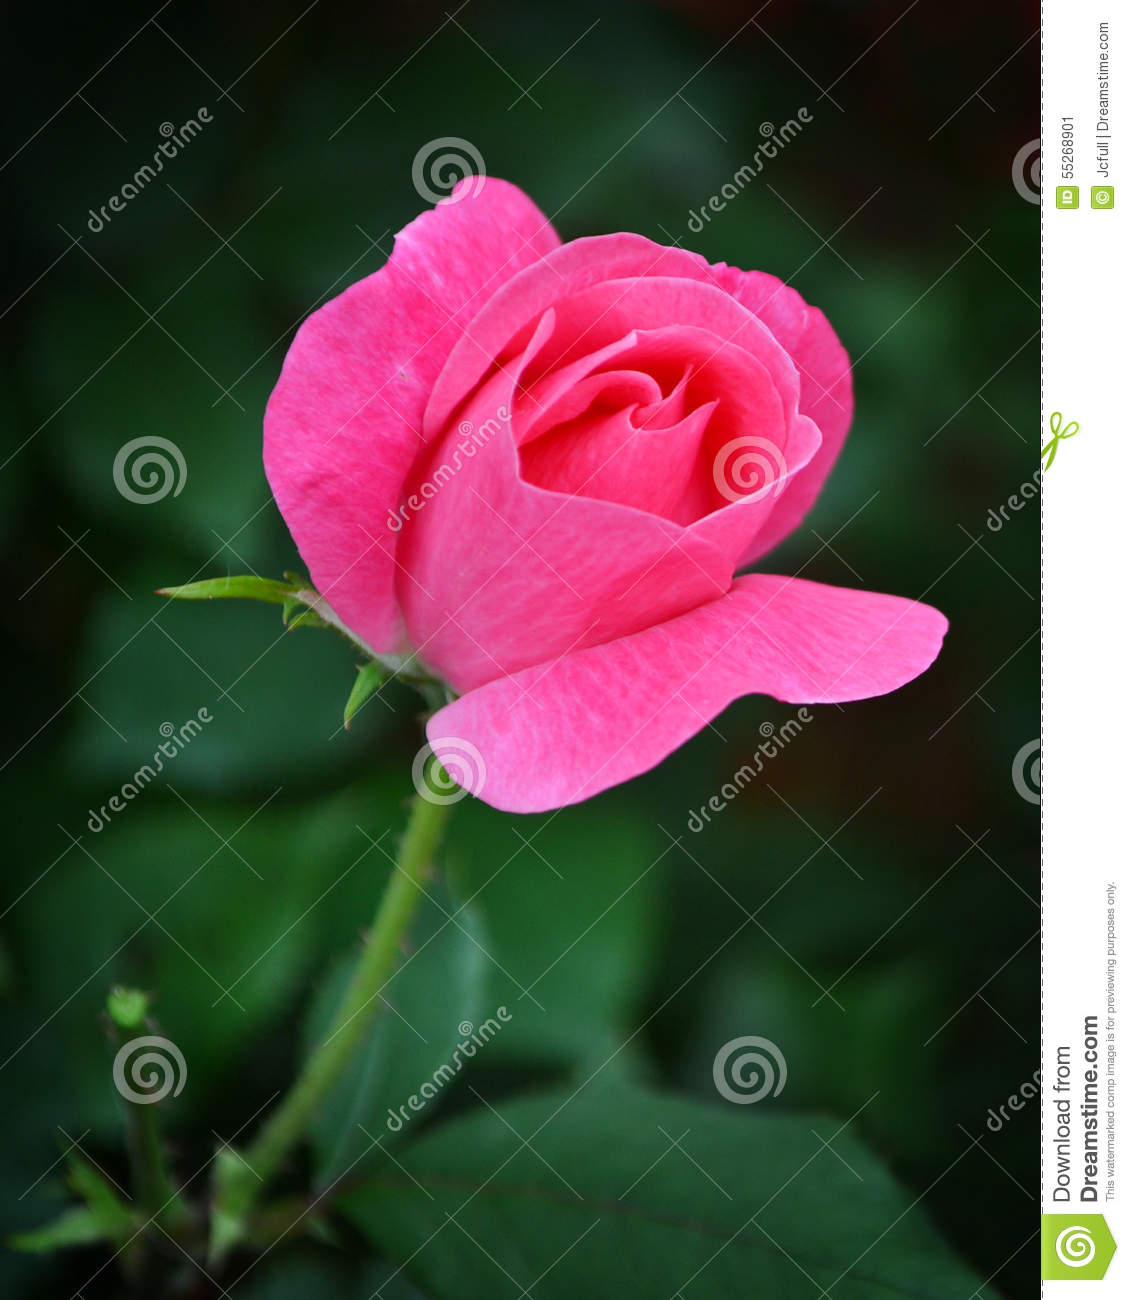 One pink rose against green leaves